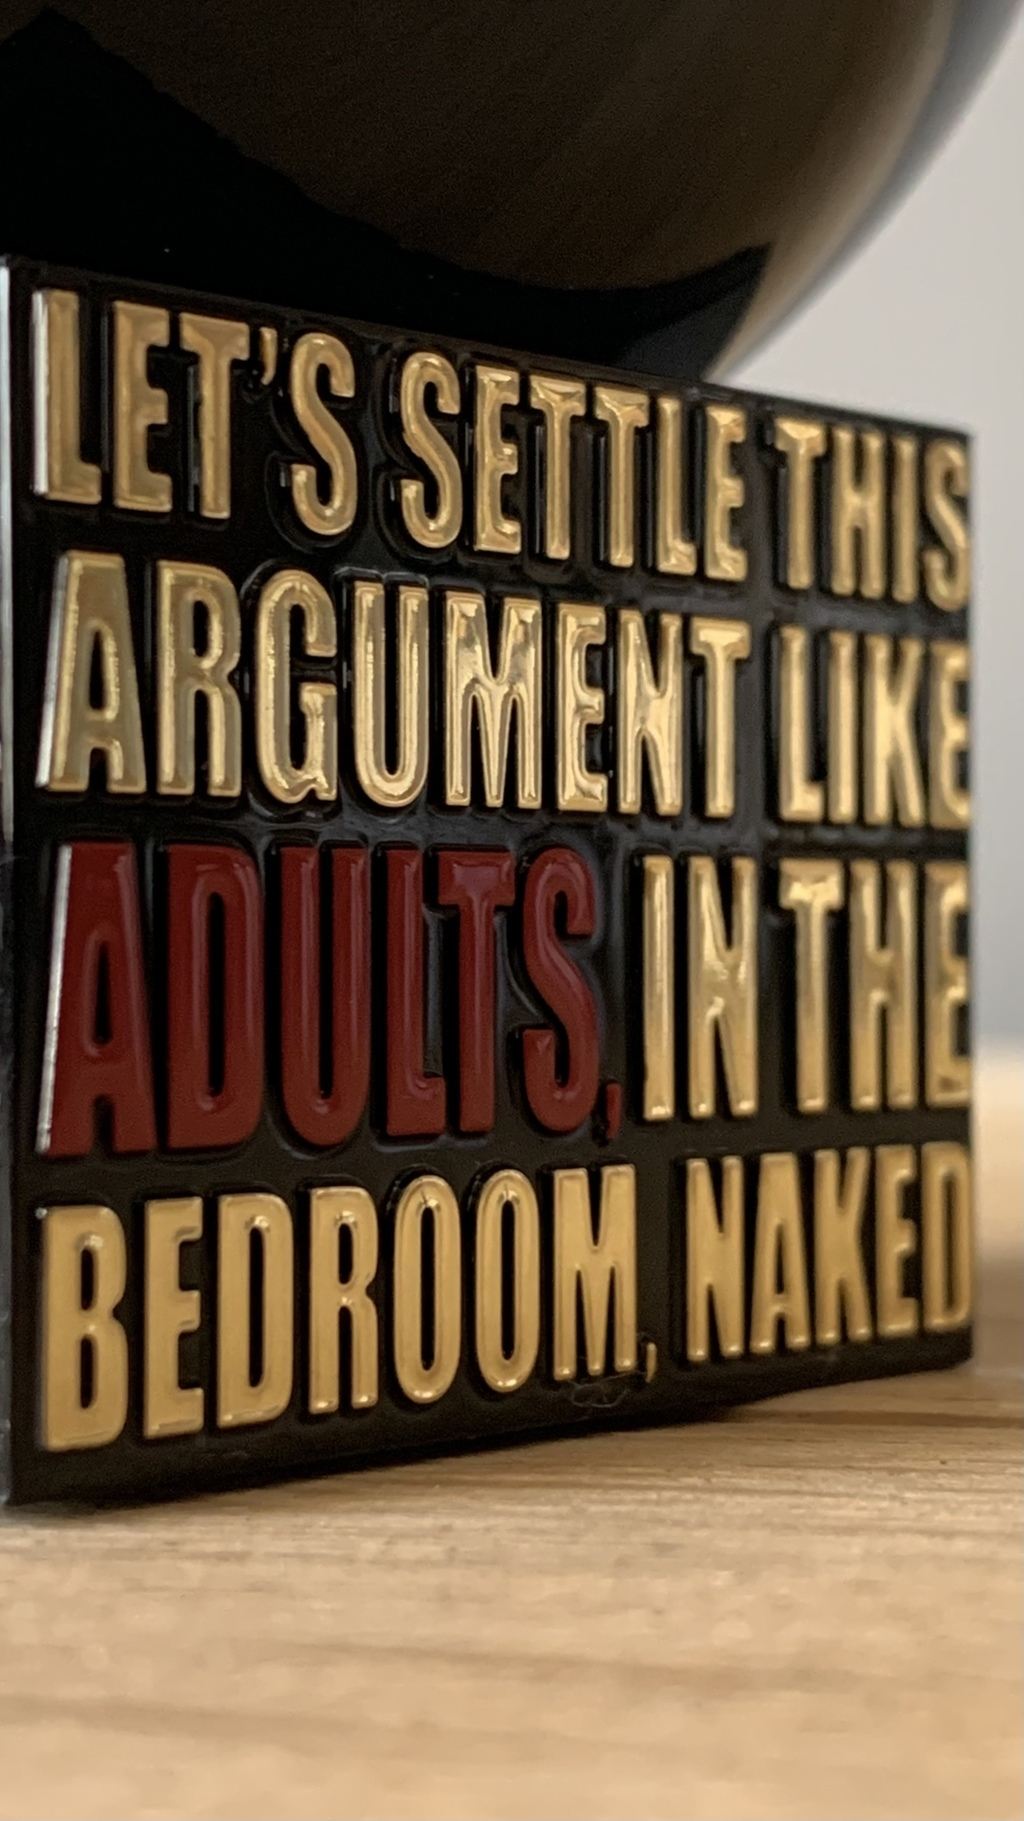 Let's Settle This Argument Like Adults, In The Bedroom, Naked By Kilian